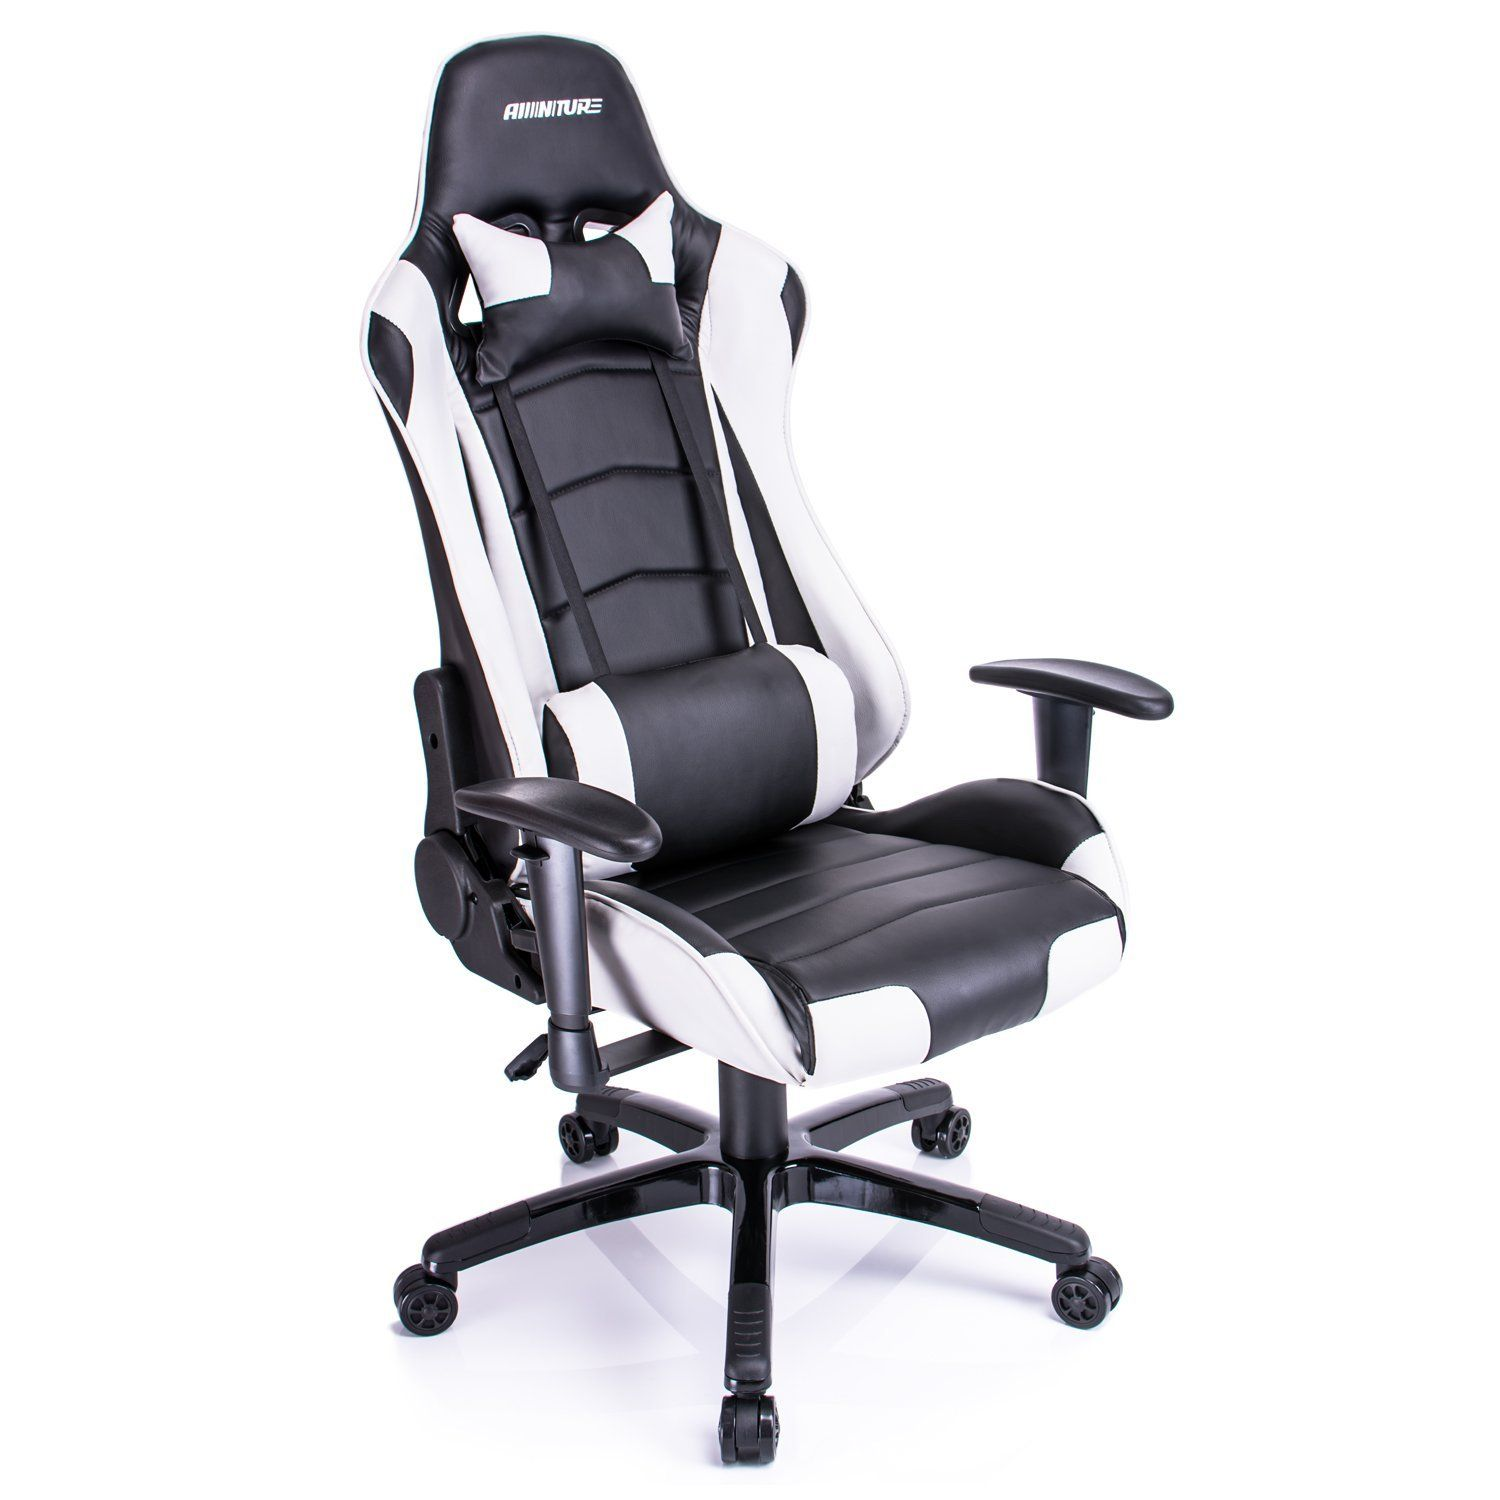 amazon kitchen chairs Amazon com Aminitrue High back Gaming Chair Racing Style Adjustable Chair White